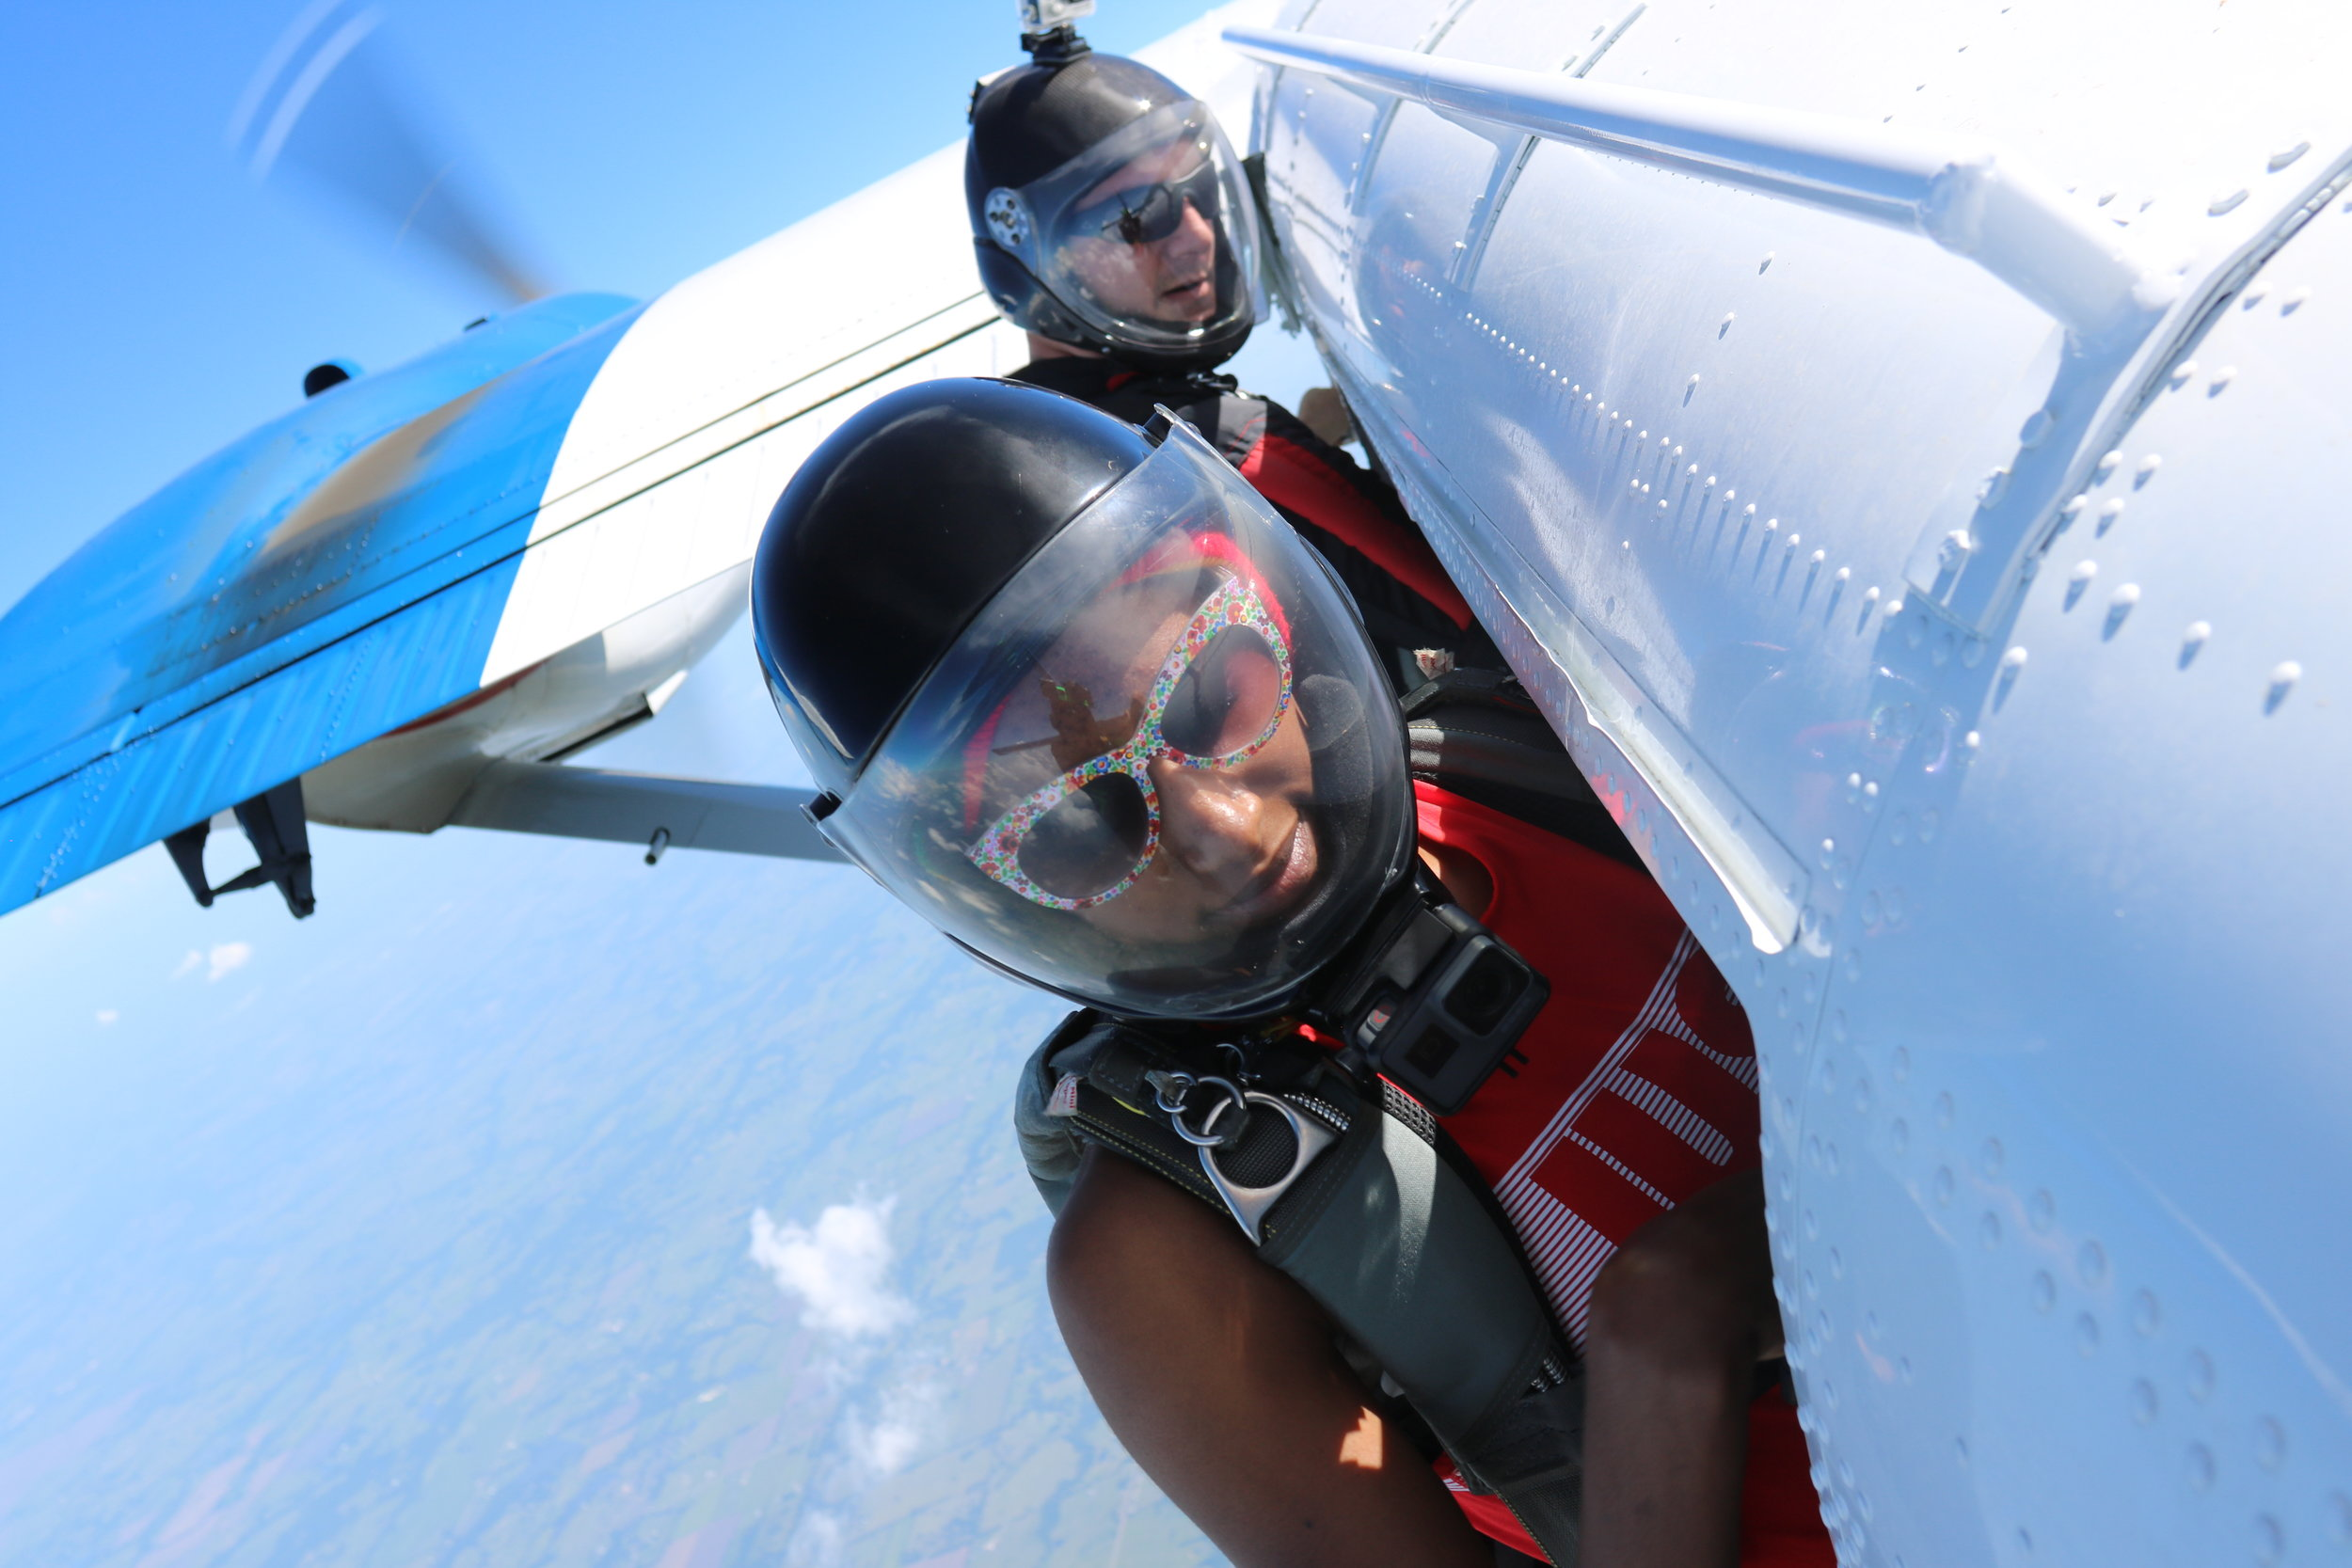 Skydivers prepare to exit a Twin Otter aircraft over Skydive Dallas. Photograph courtesy of David Ryder.